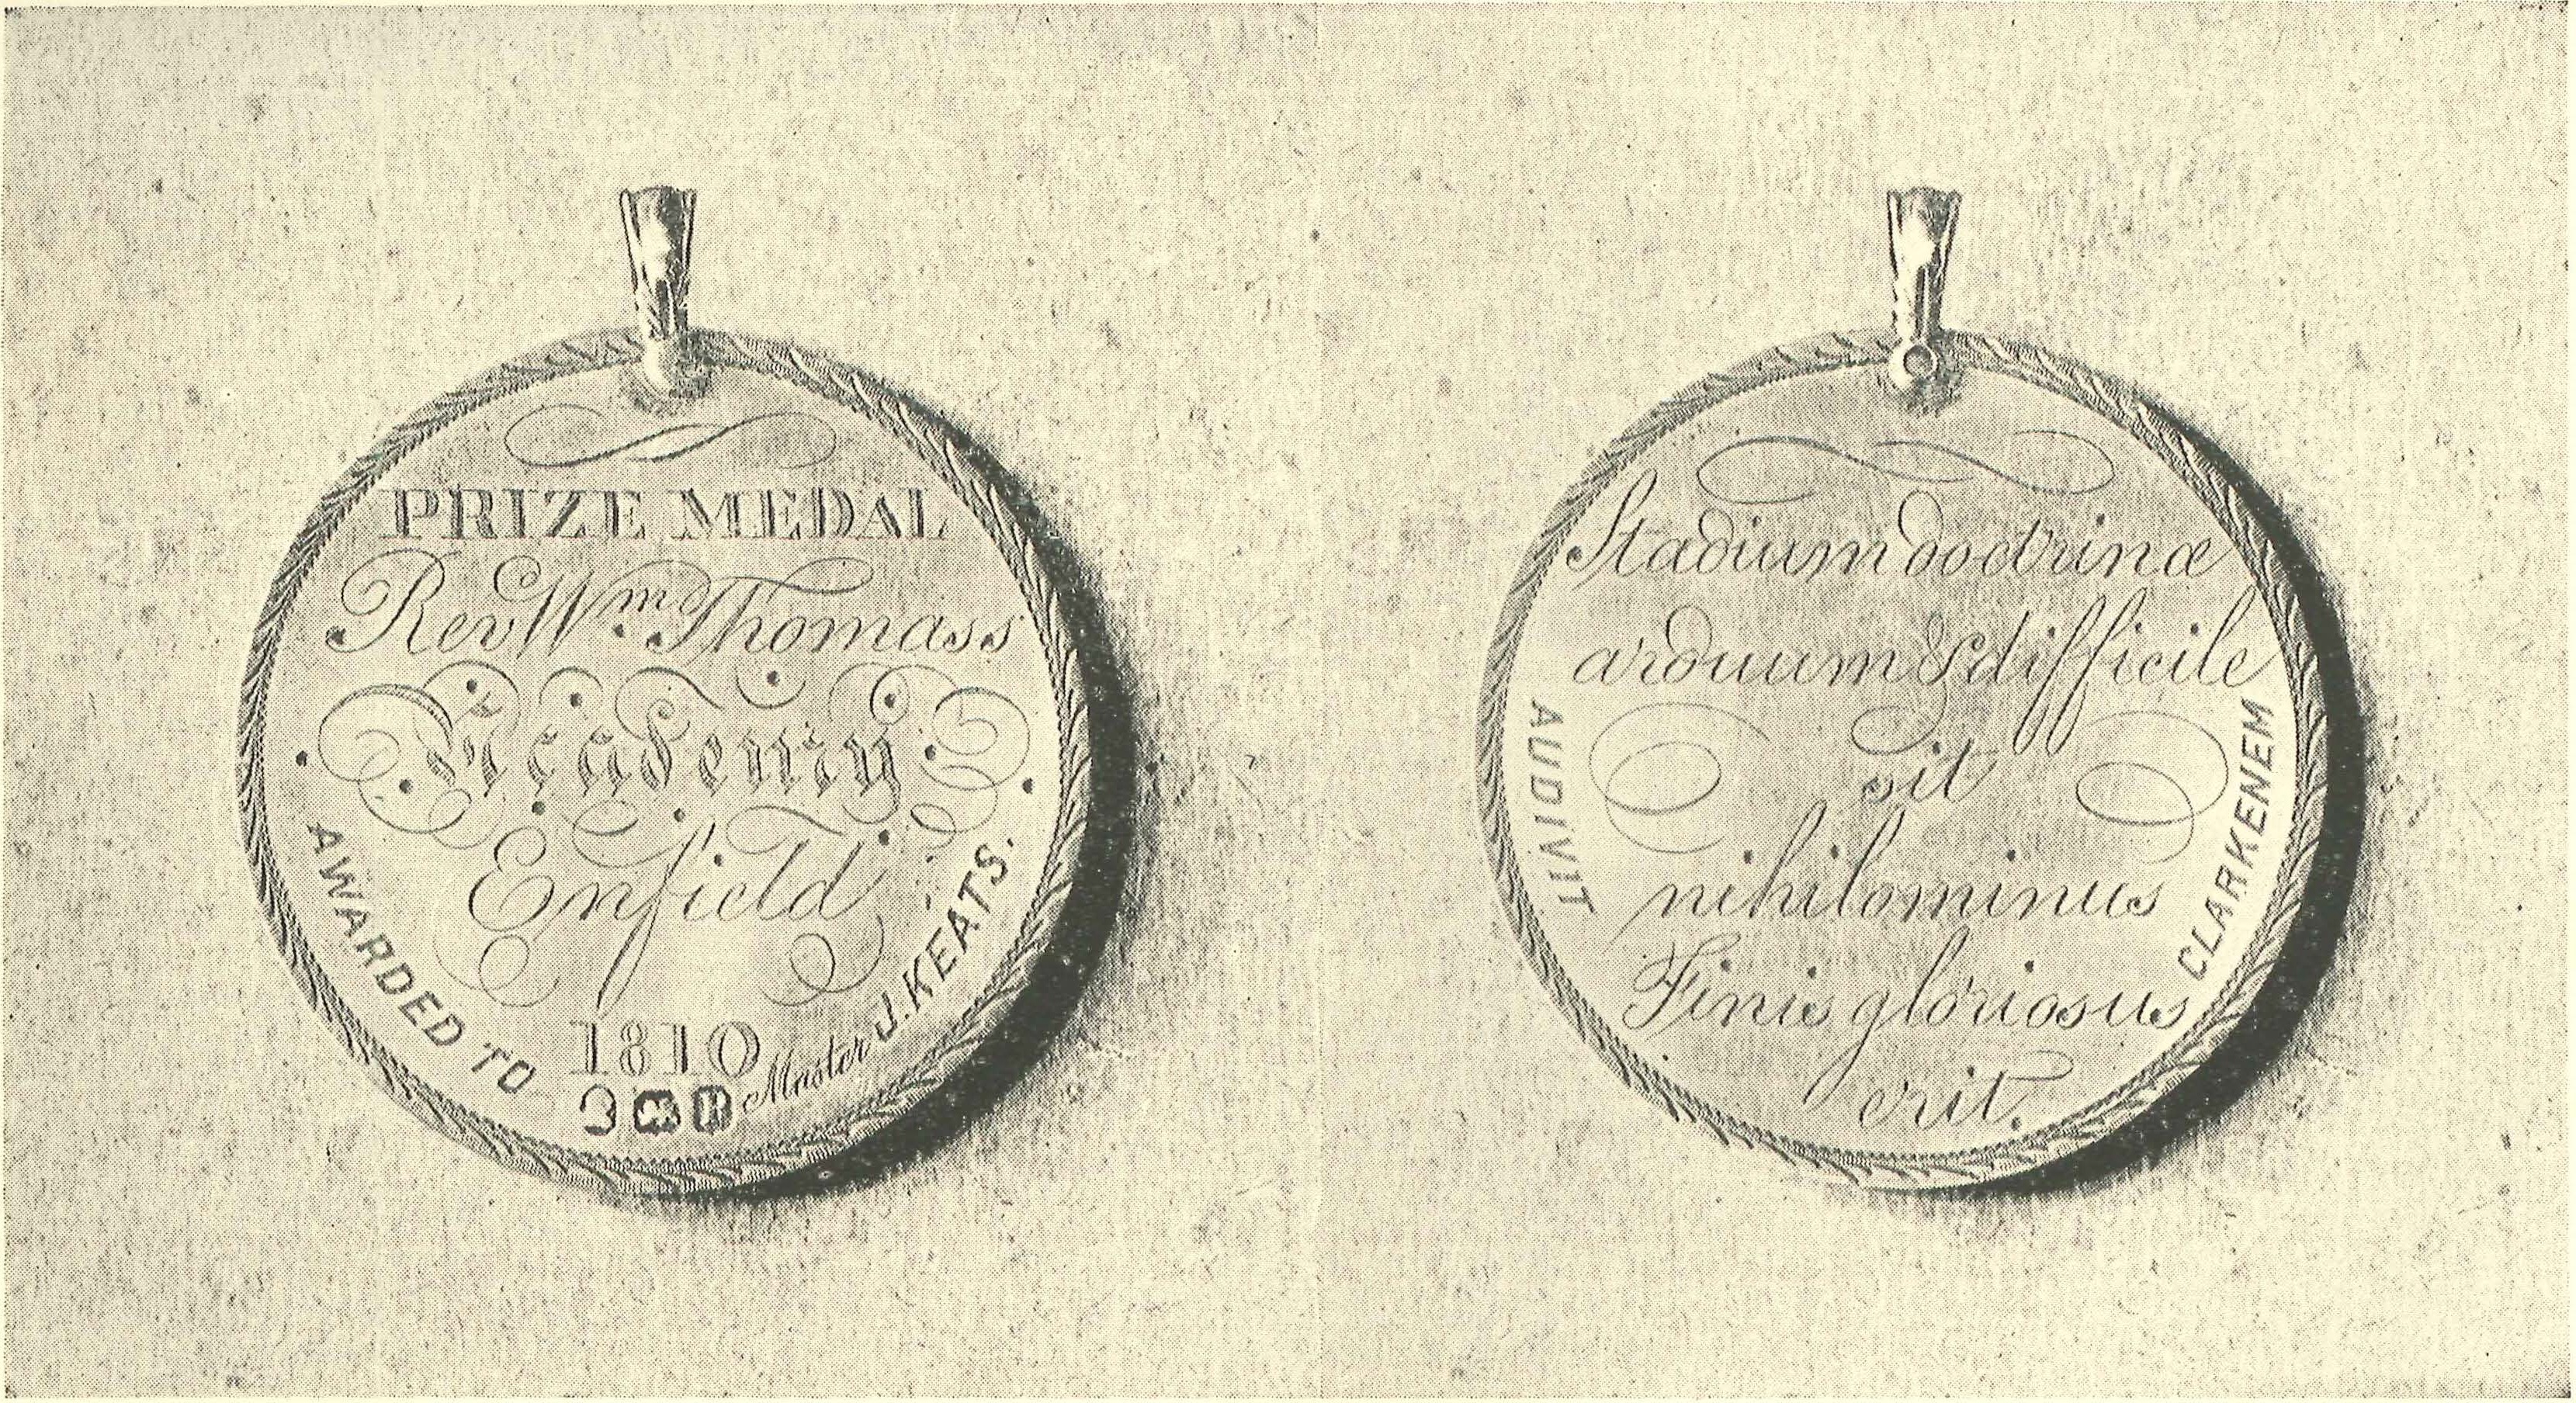 keats shelley association of america awards grants a silver prize medal awarded to john keats in 1810 by rev william thomas pastor of the independent congregation at enfield where keats studied